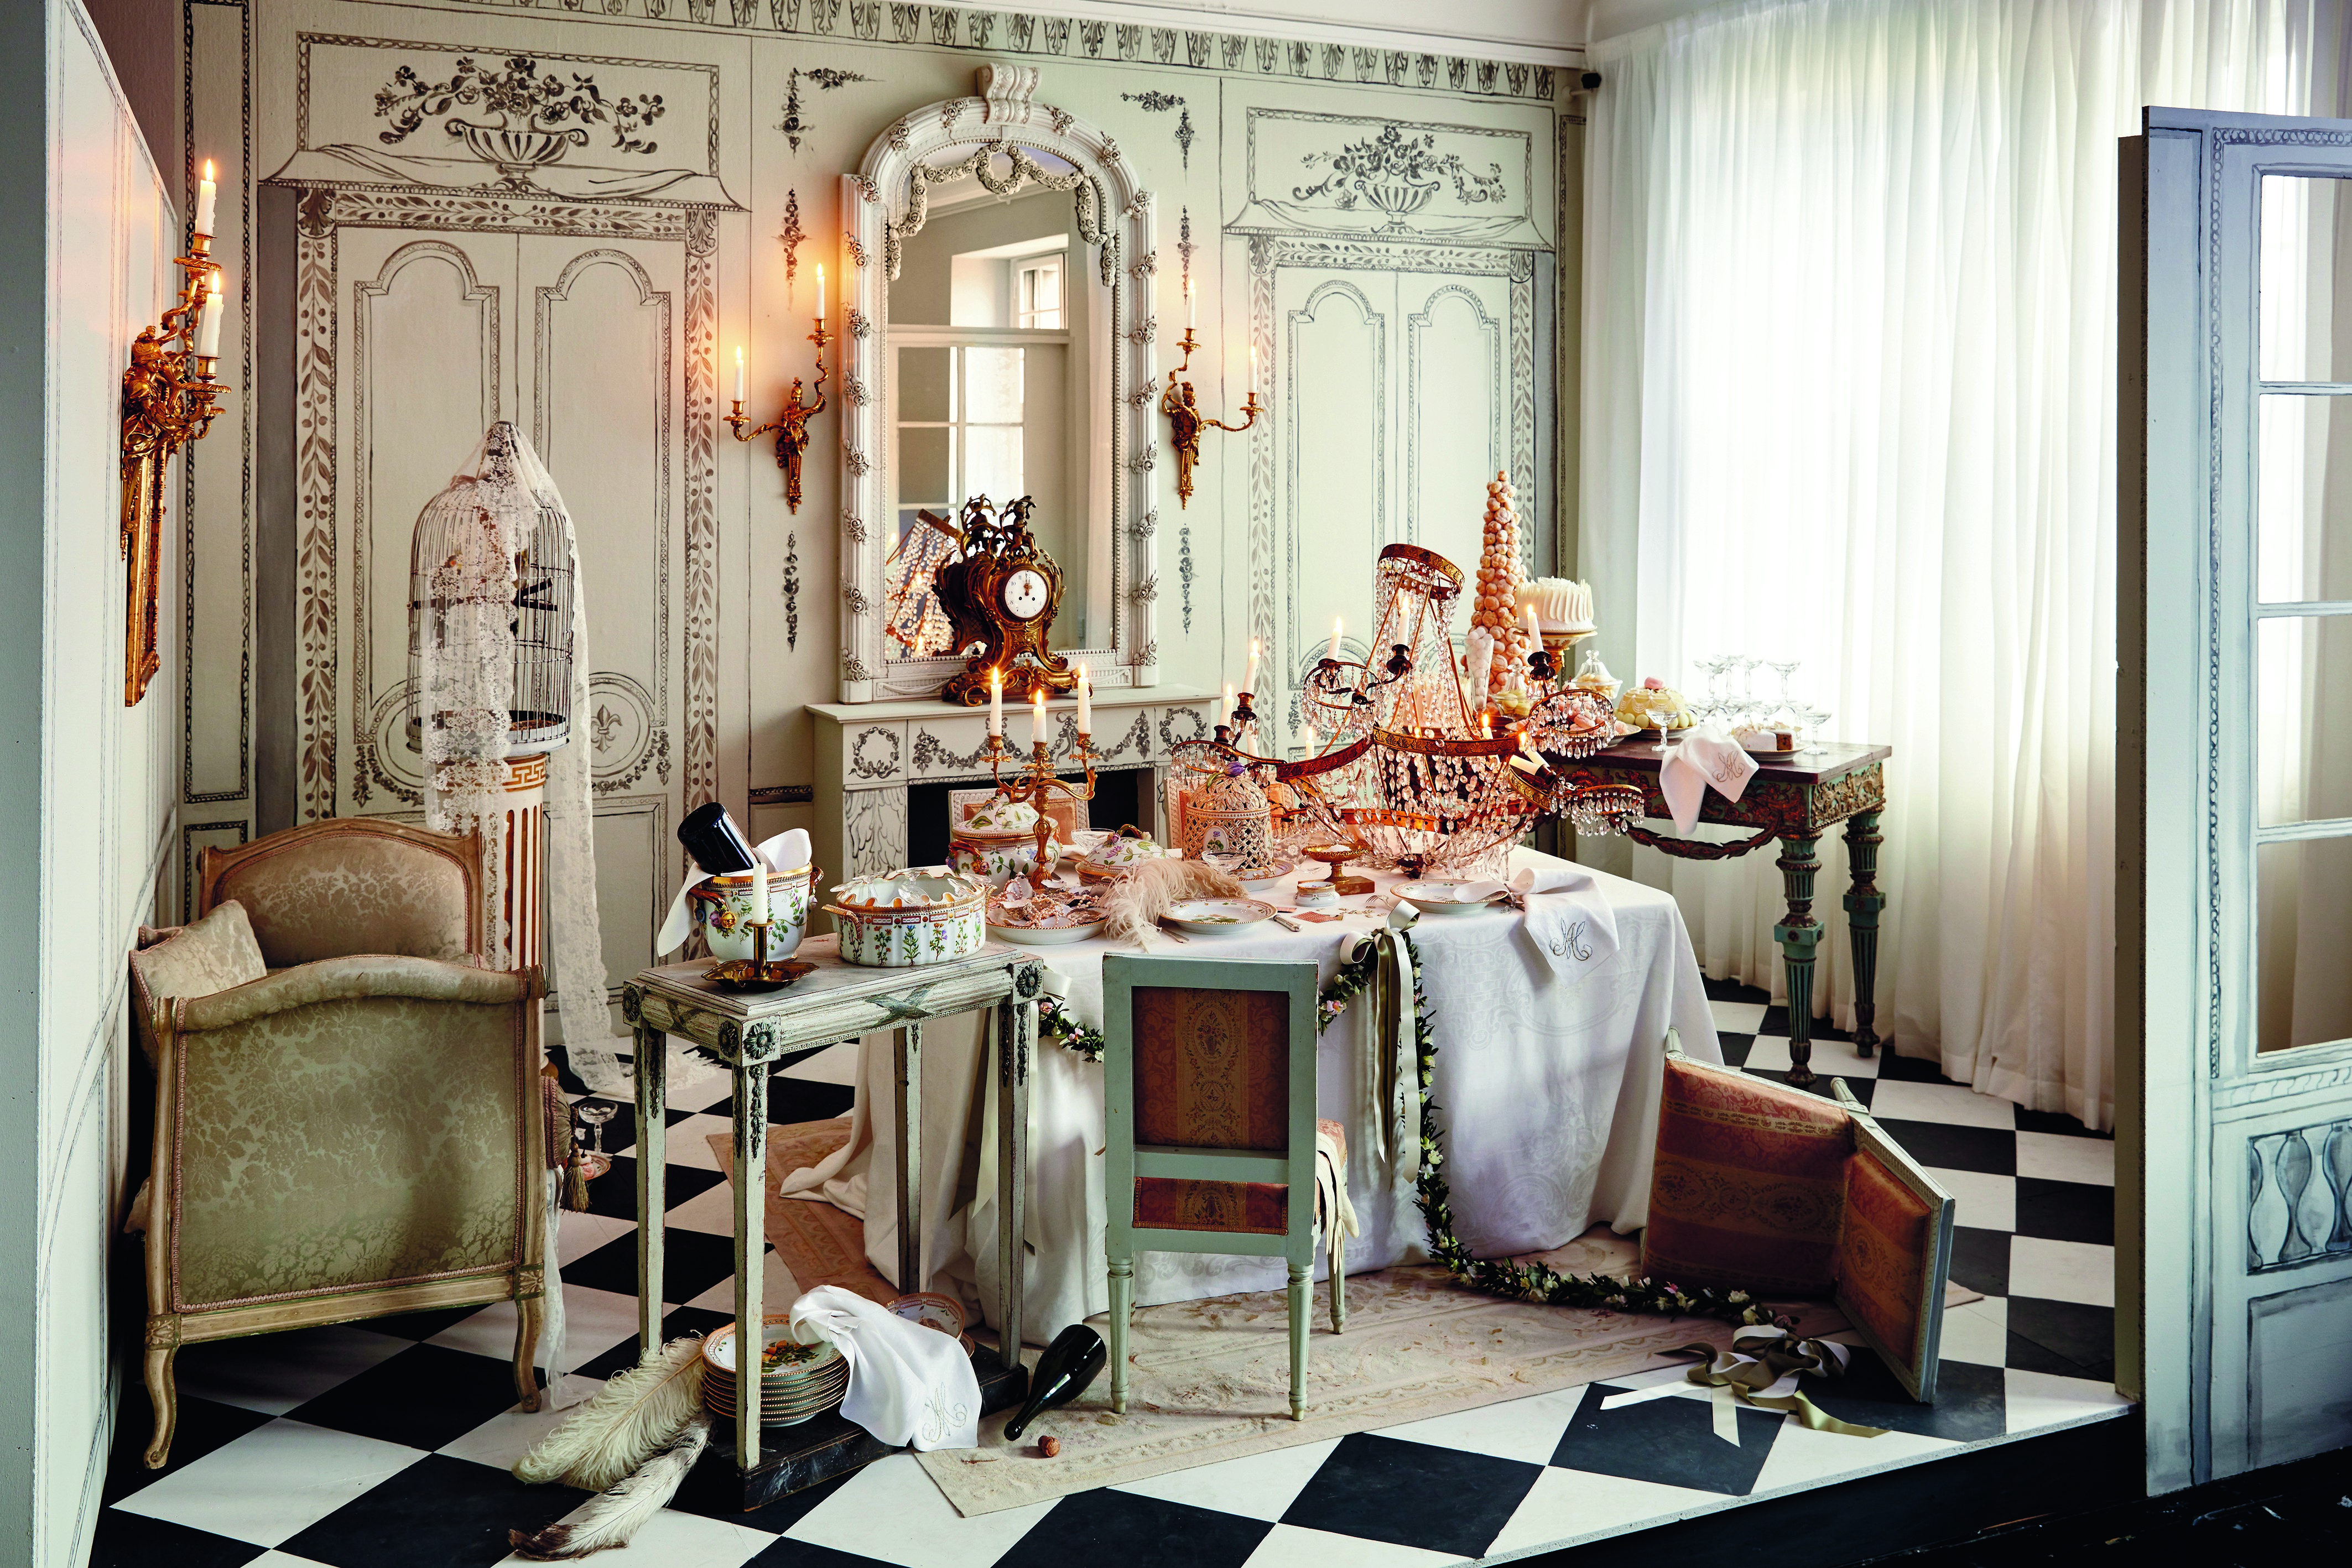 fashionable Christmas - an 18th Century French fantasy vignette and Christmas table by Ole Yde features Flora Danica porcelain and French furniture - Royal Copenhagen via Atticmag